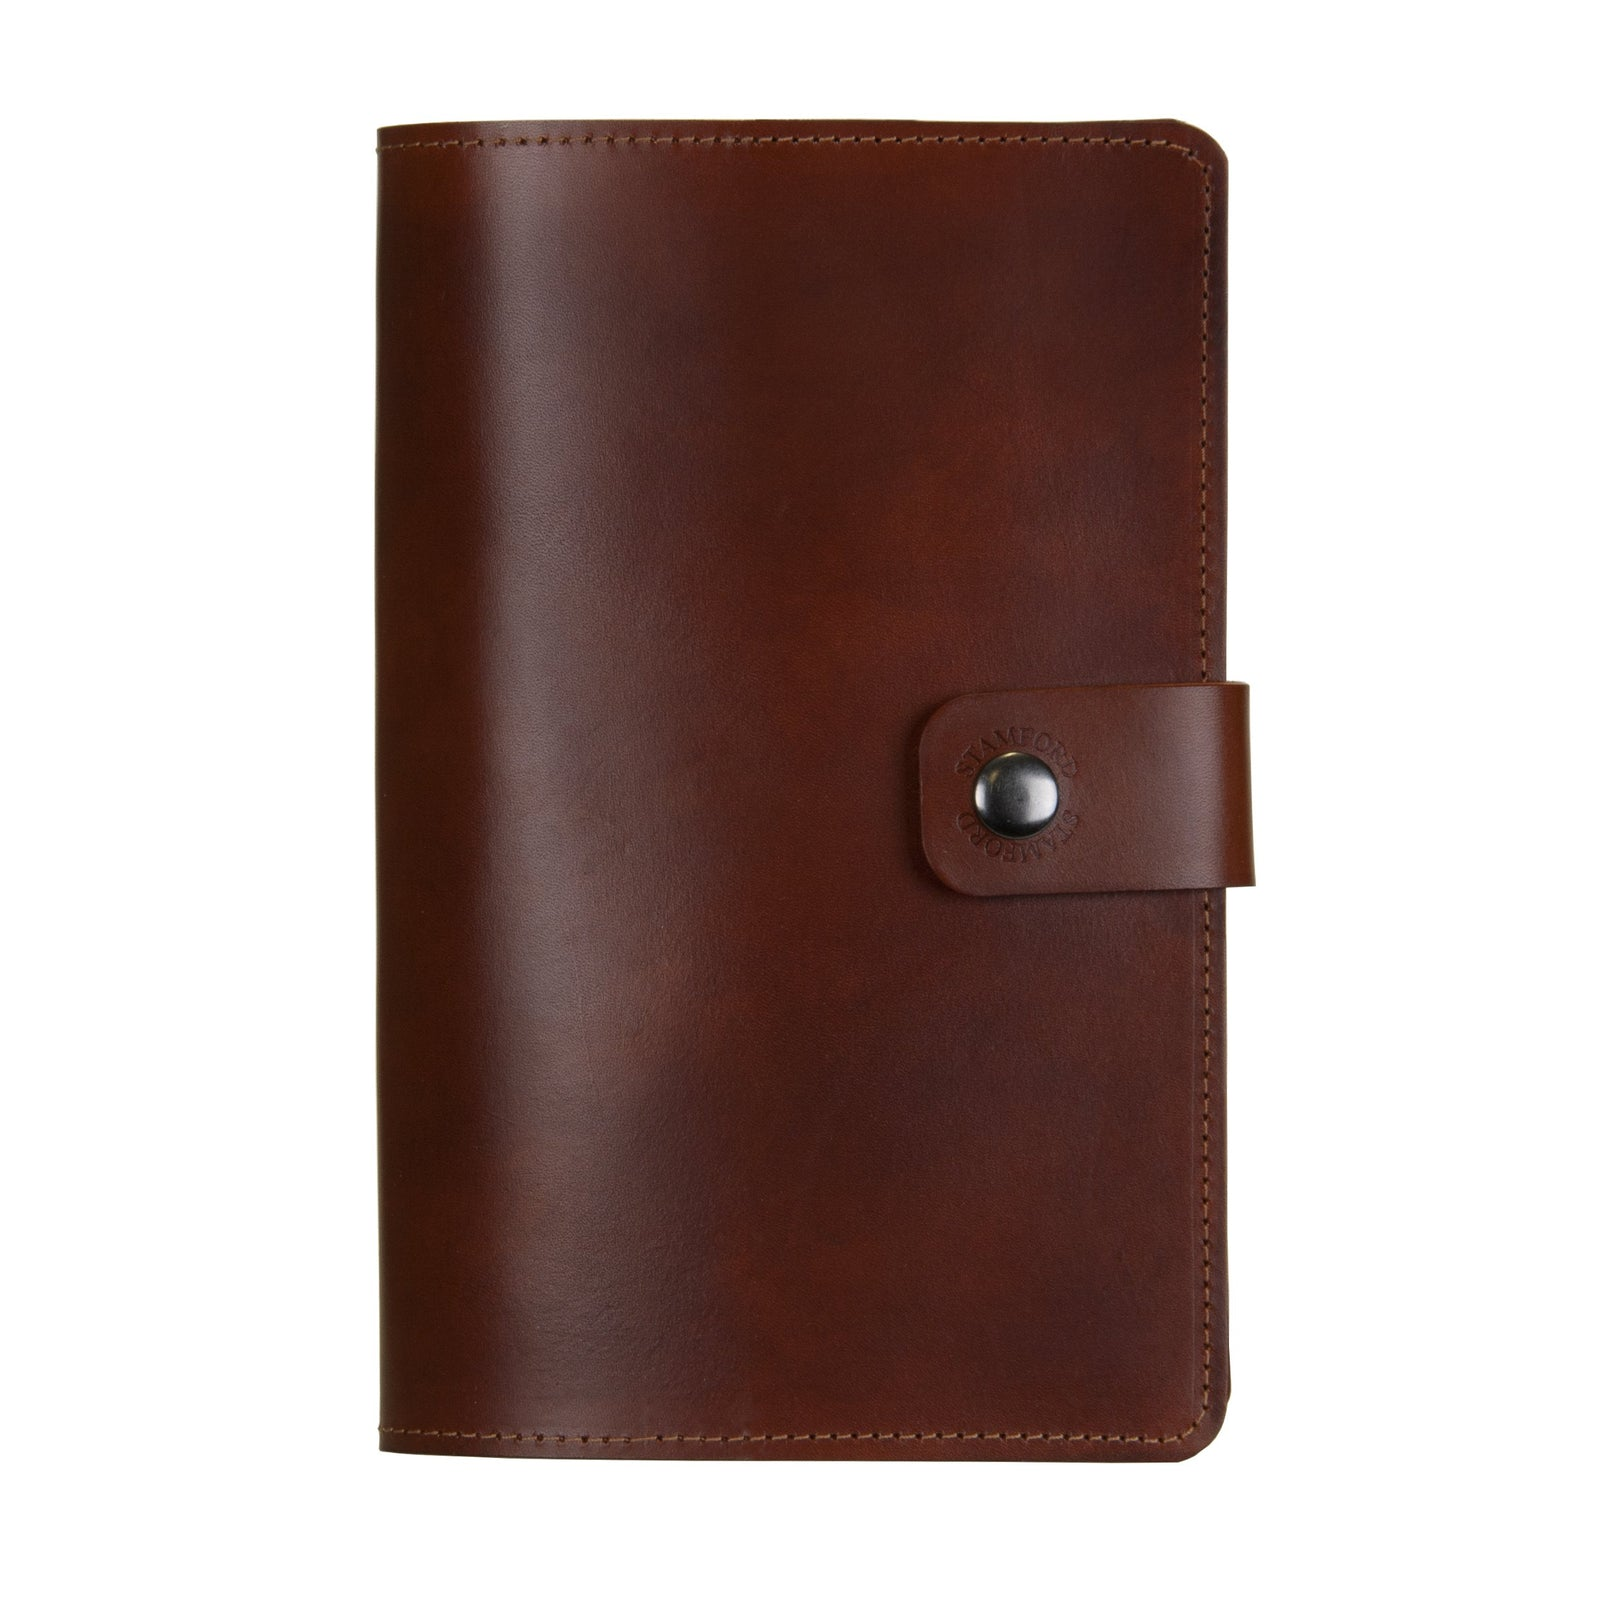 The Burghley Refillable Leather Journal